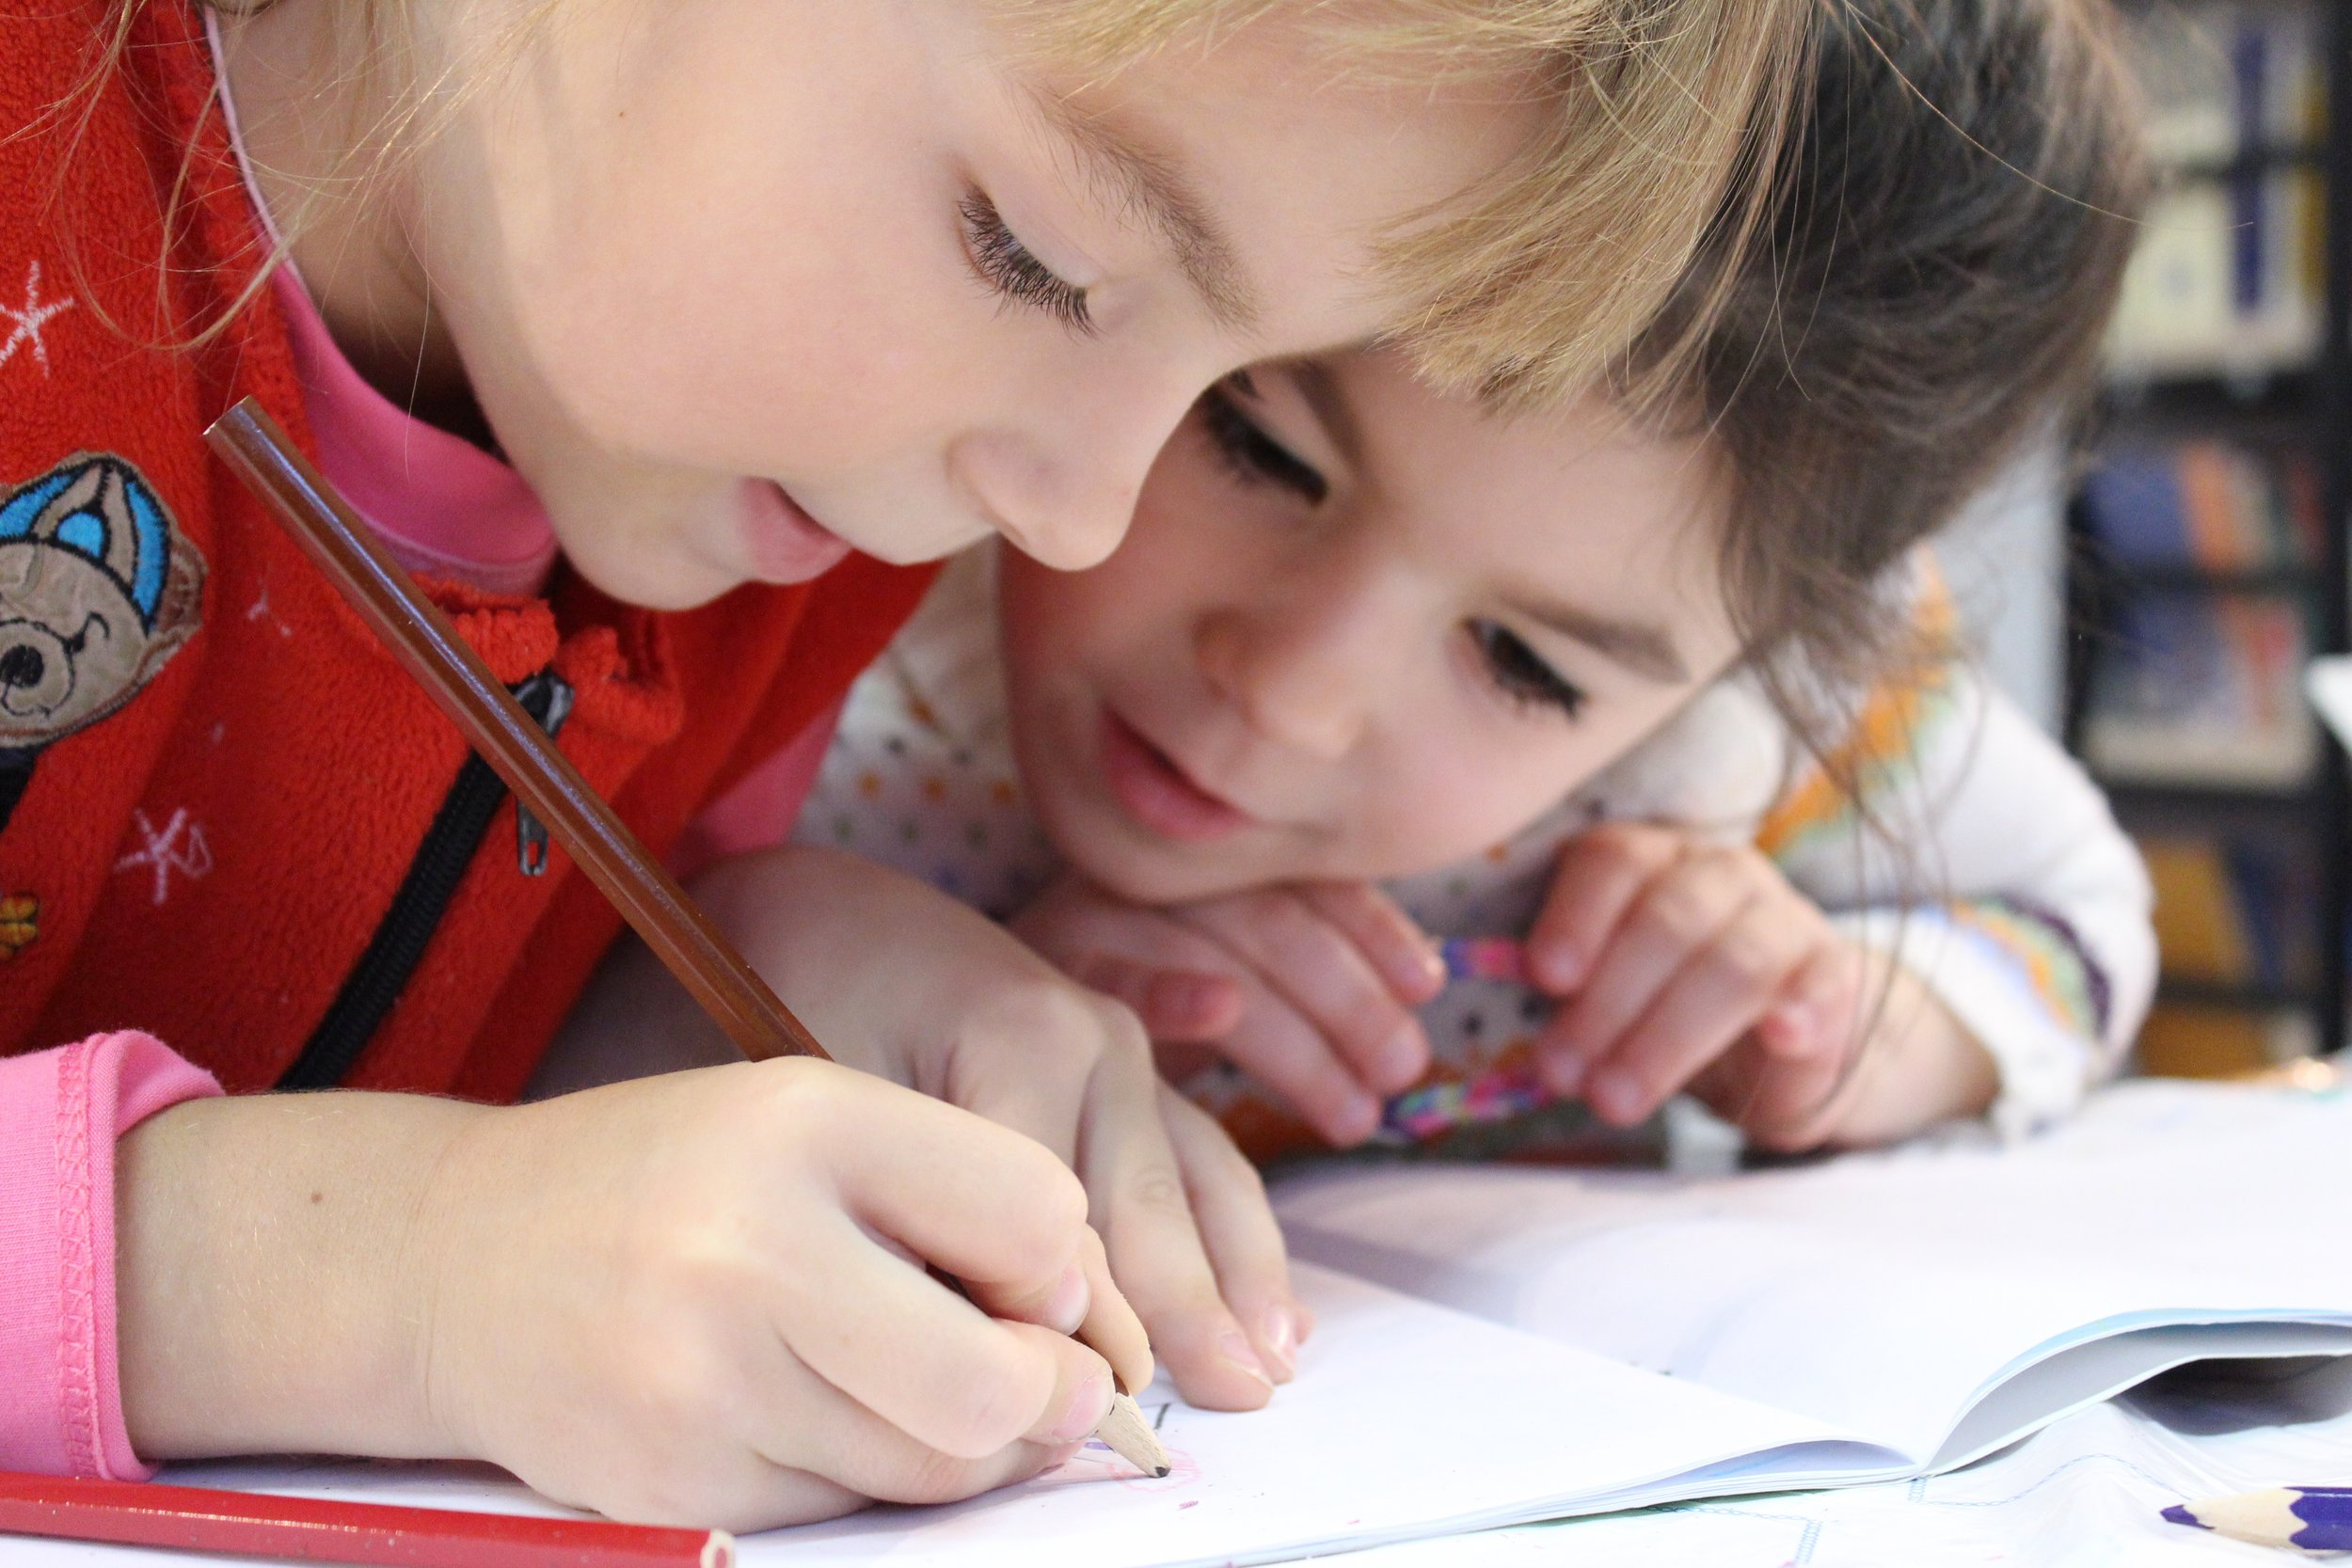 Watch How to Improve Your Childs Poor Homework Performance video